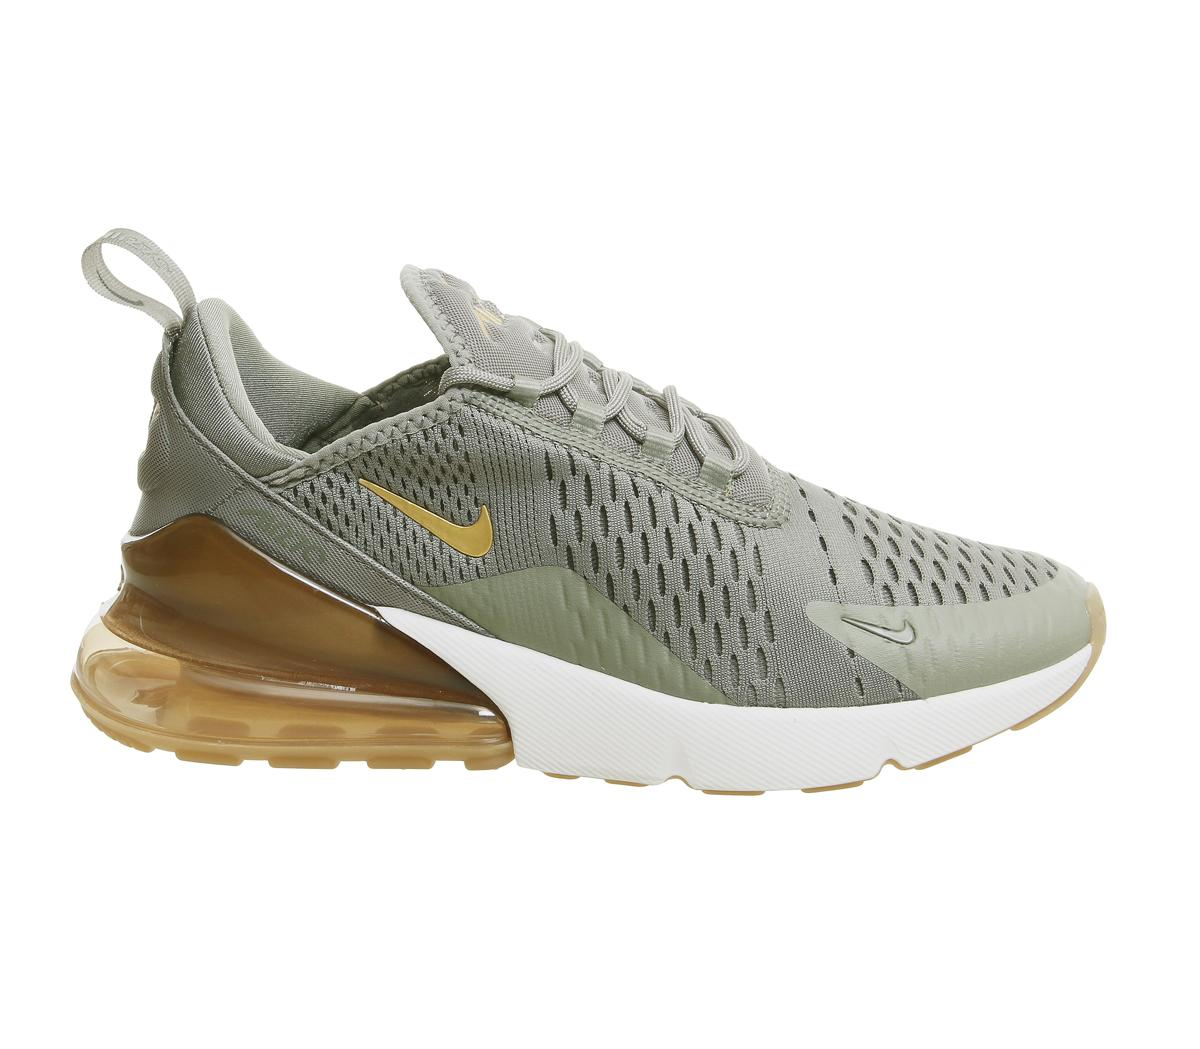 Nike Air Max 270 Trainers Dark Stucco Met Gold F - Sneaker damen